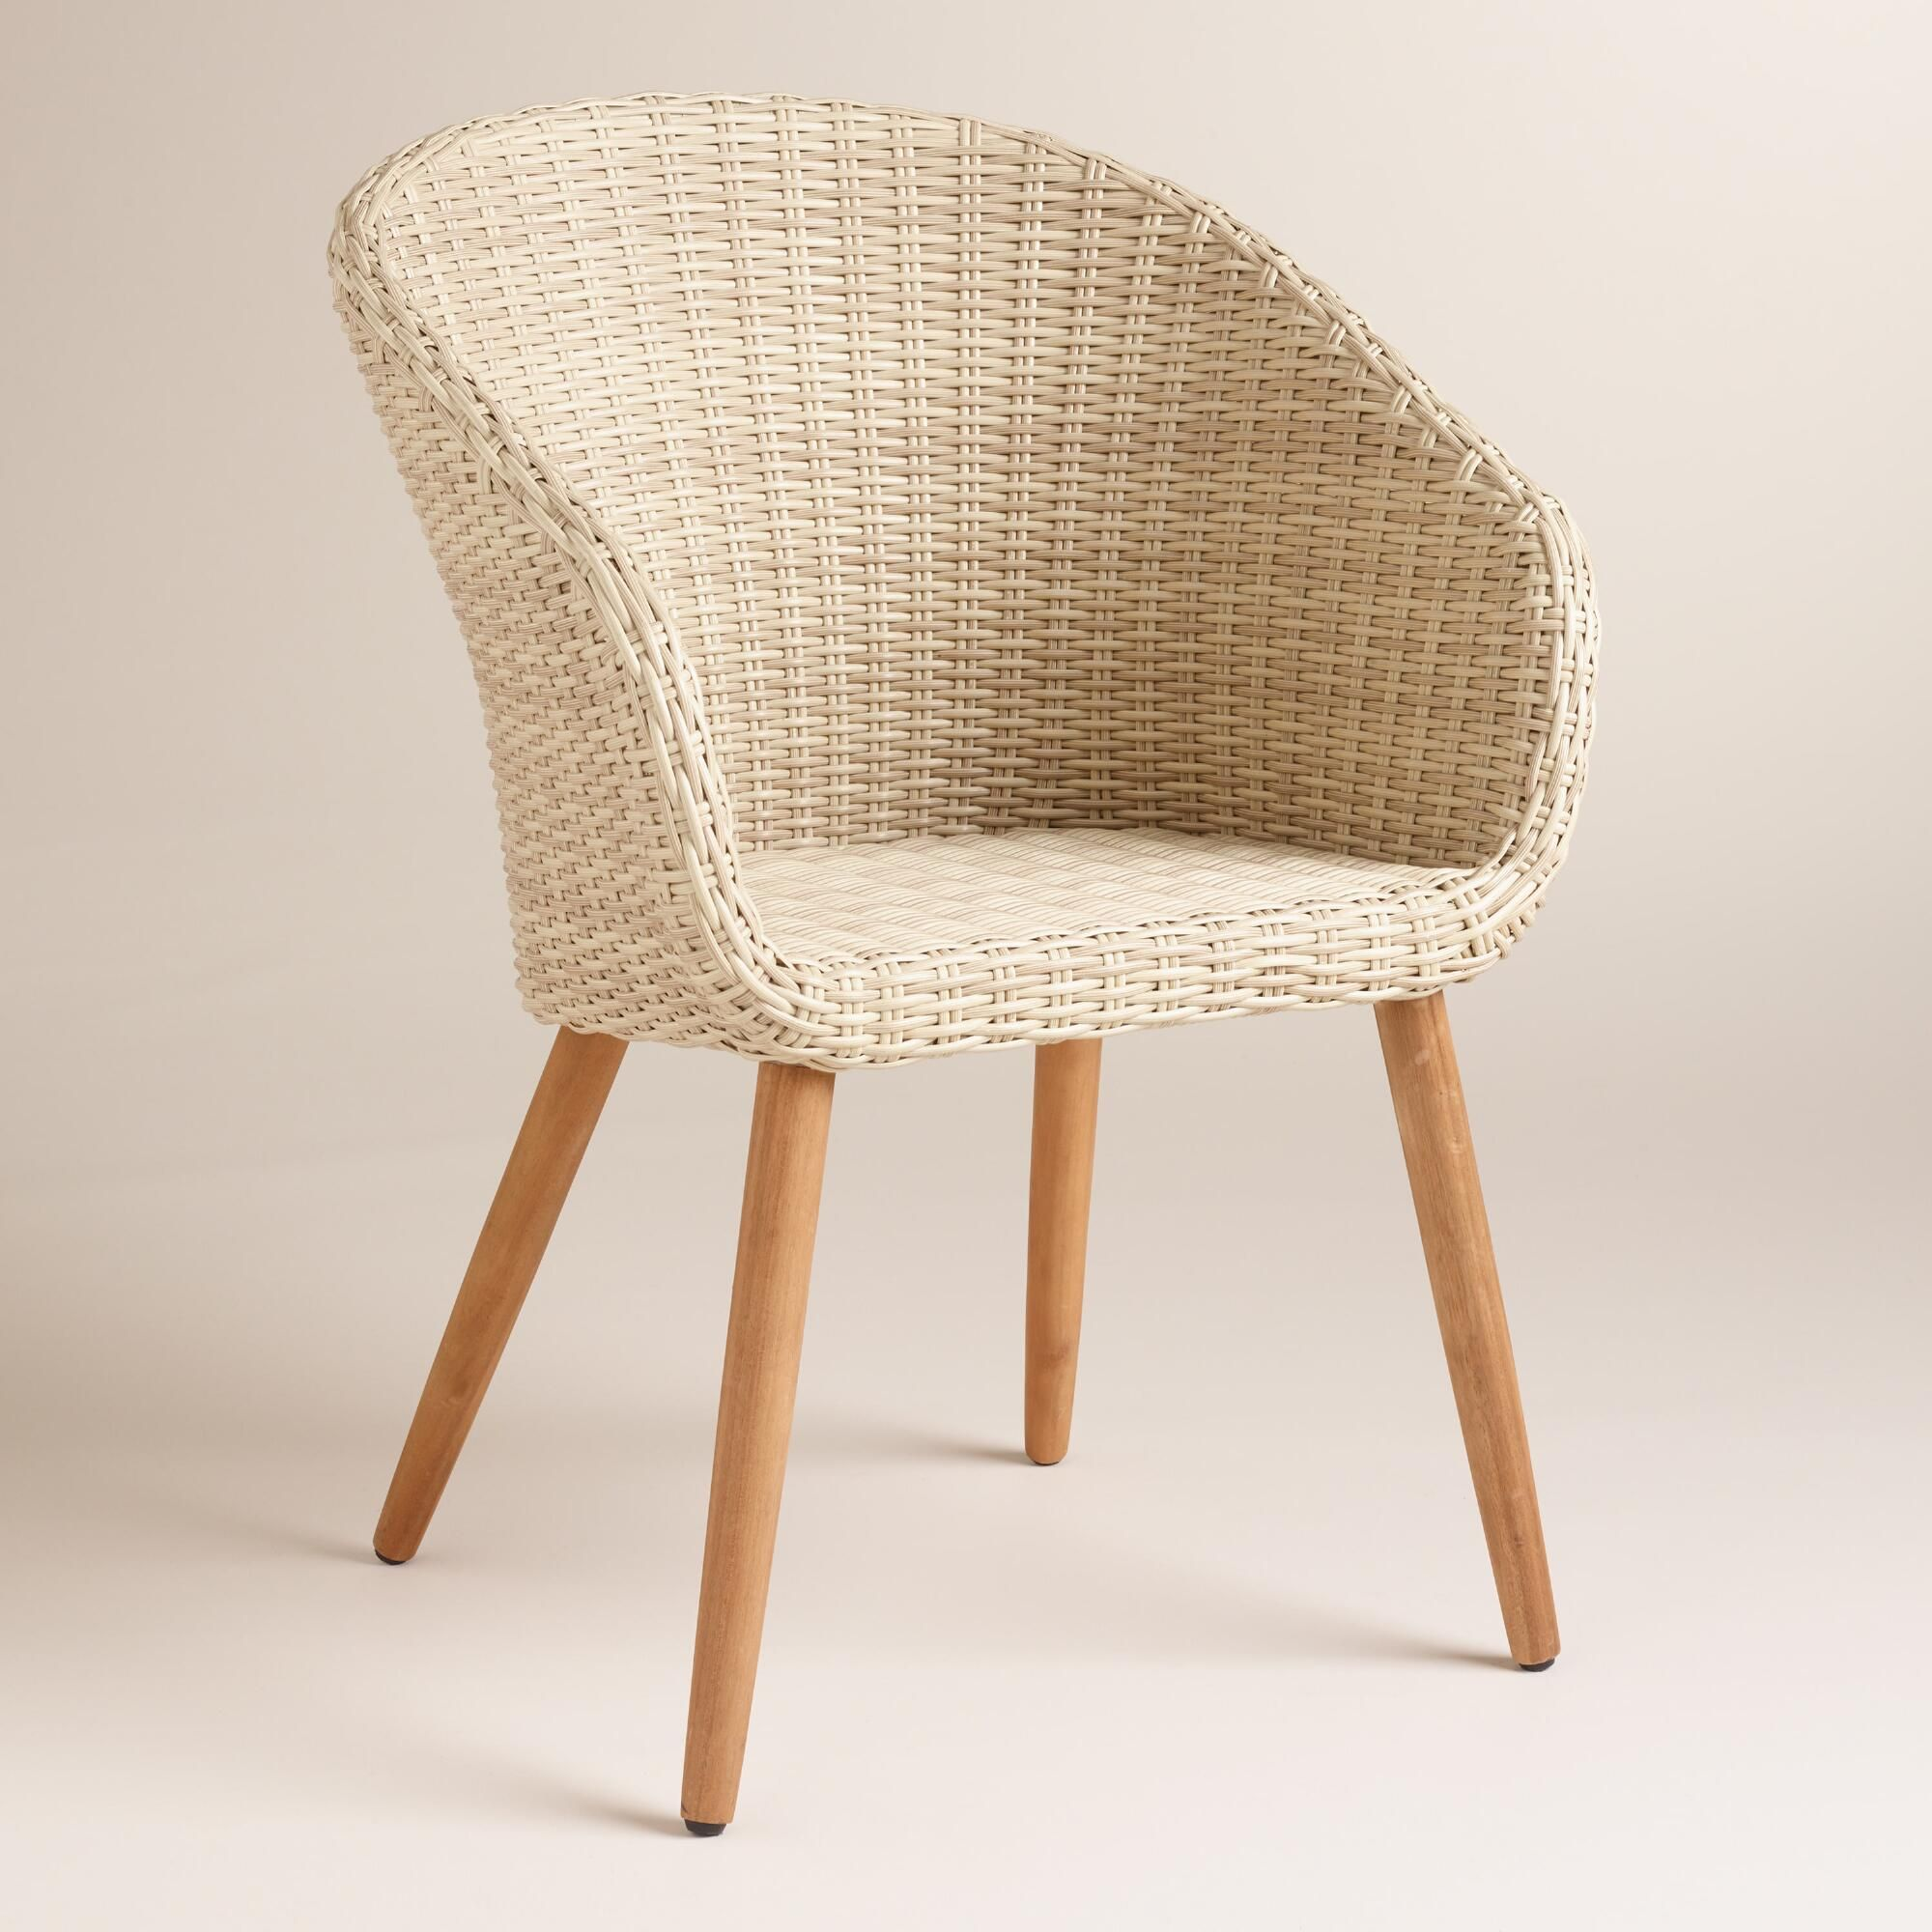 Comfortable Wicker Chairs Batman Bean Bag Chair Casual And Distinctly Mid Century In Style